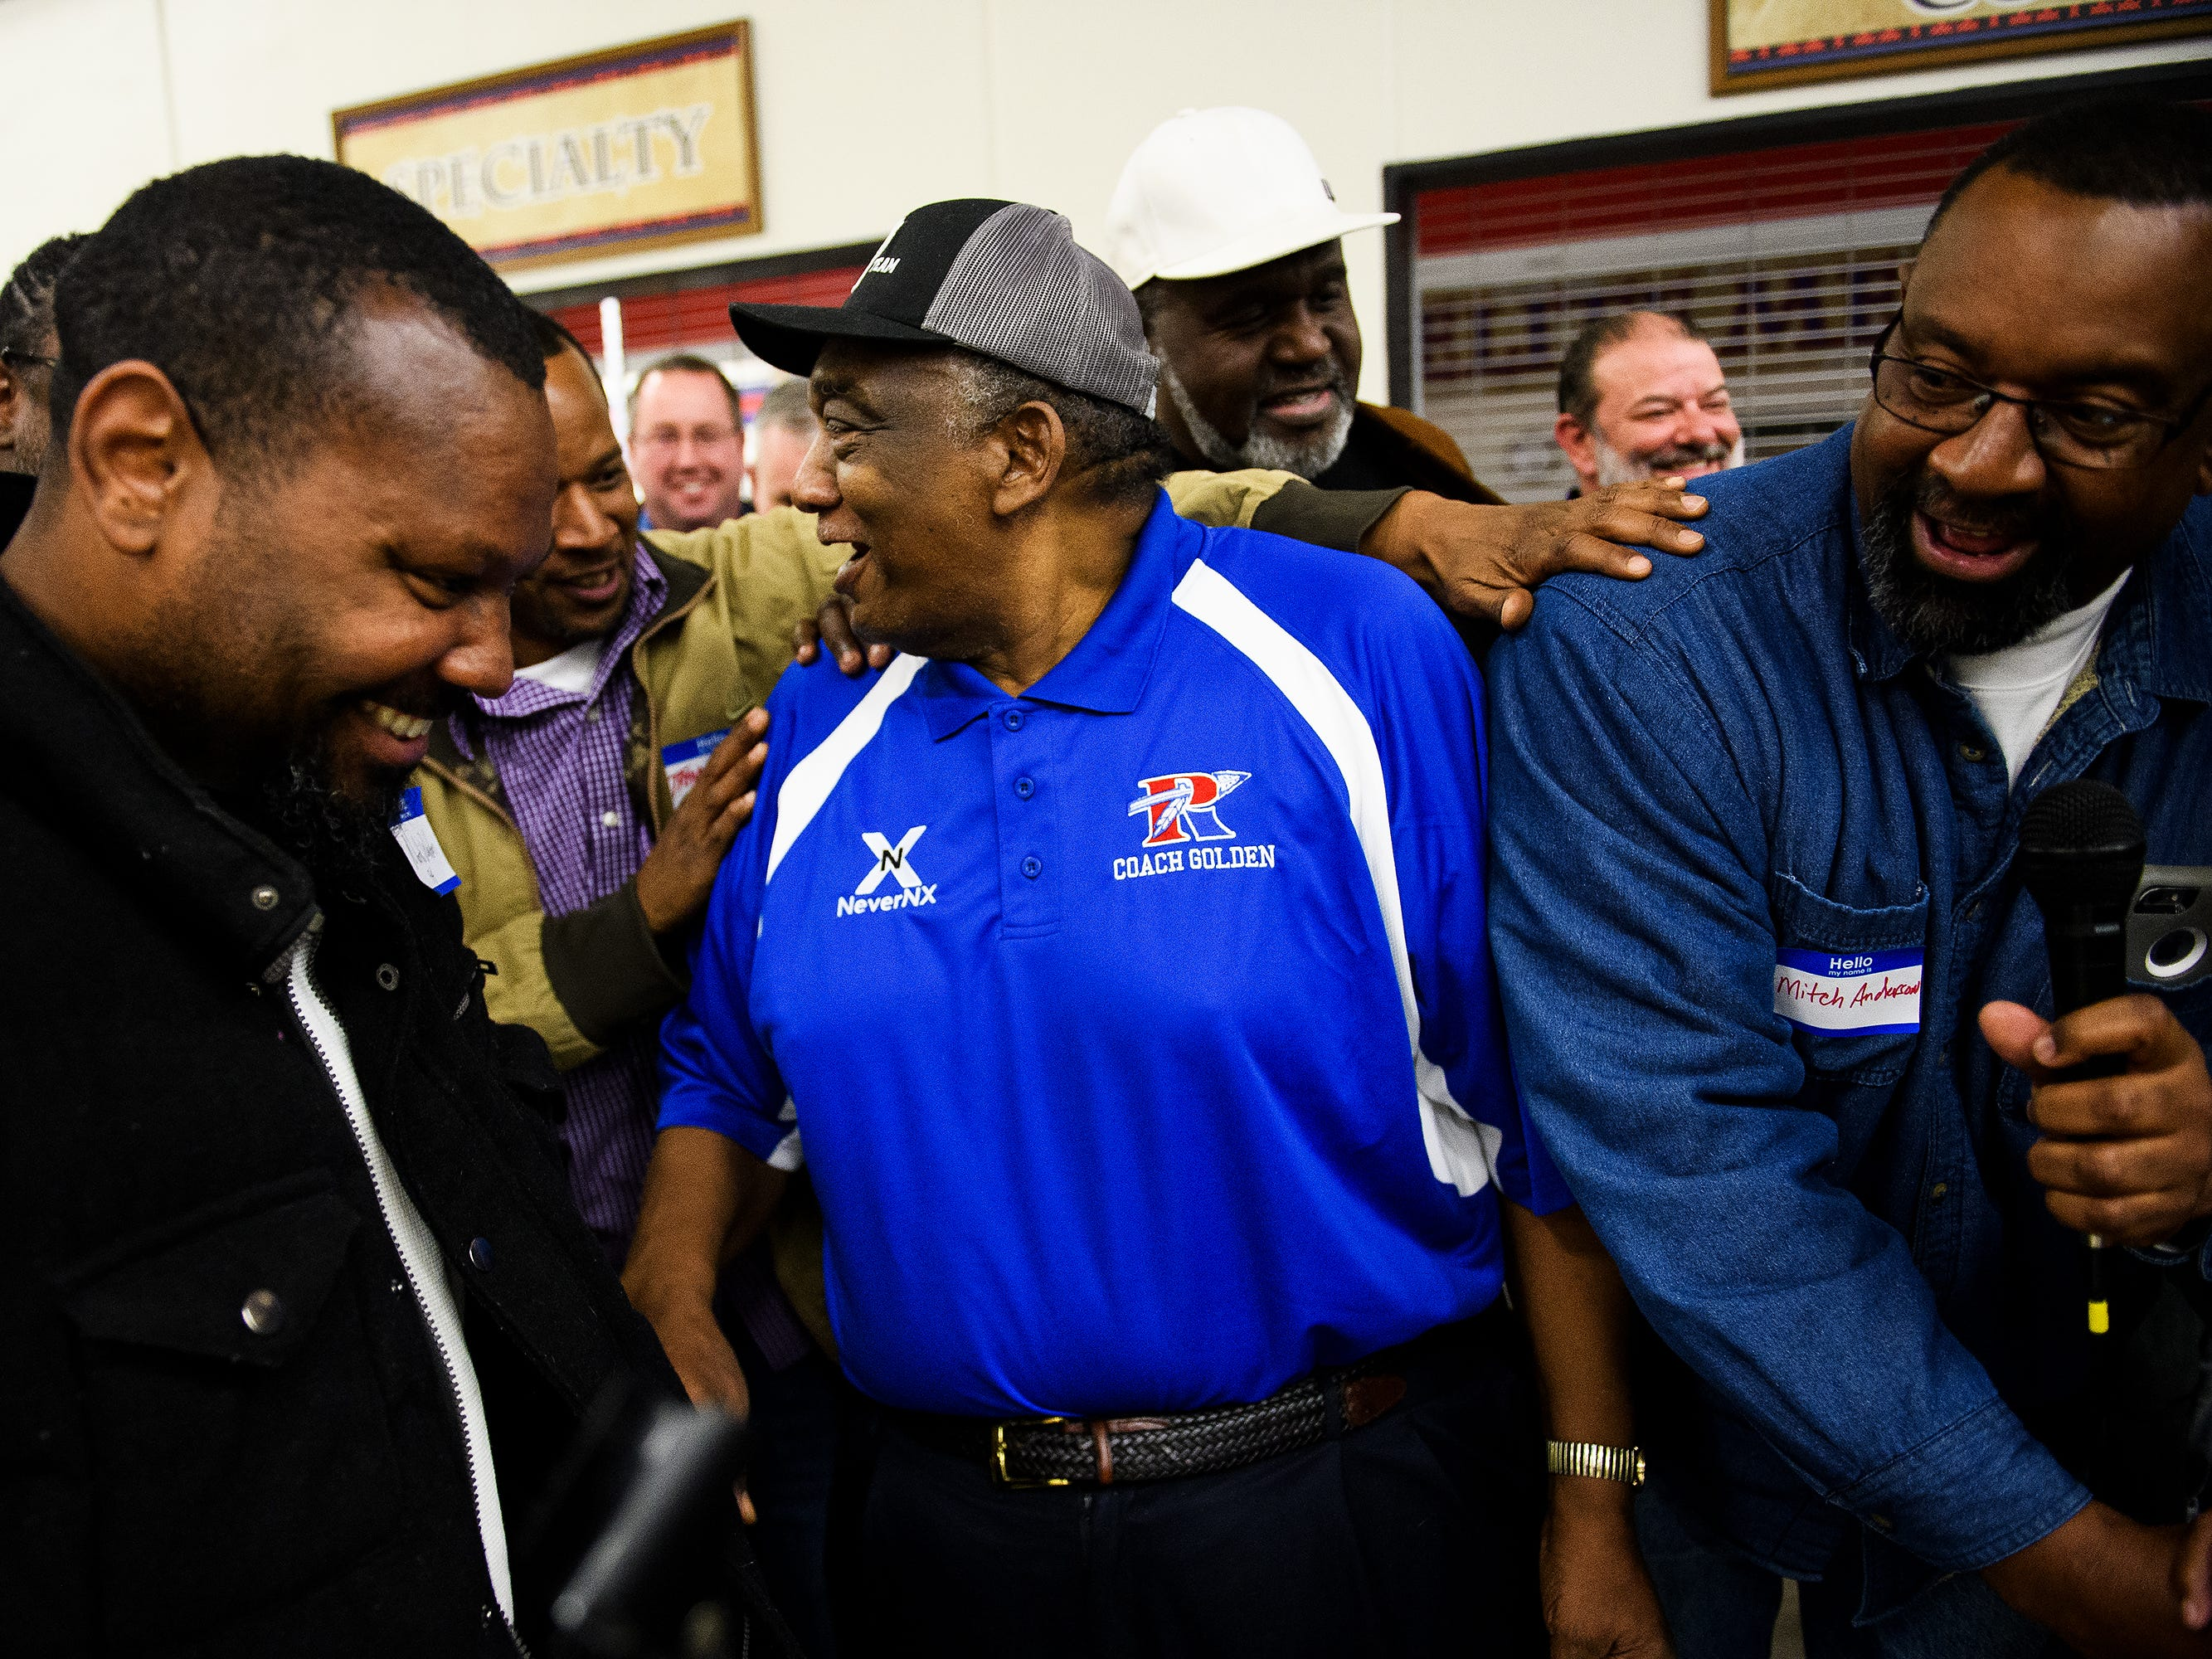 Louie Golden is surrounded by several of his former basketball players during a night honoring his legacy as one of South Carolina's winningest prep basketball coach at Riverside High School on Friday, Jan. 25 2019.